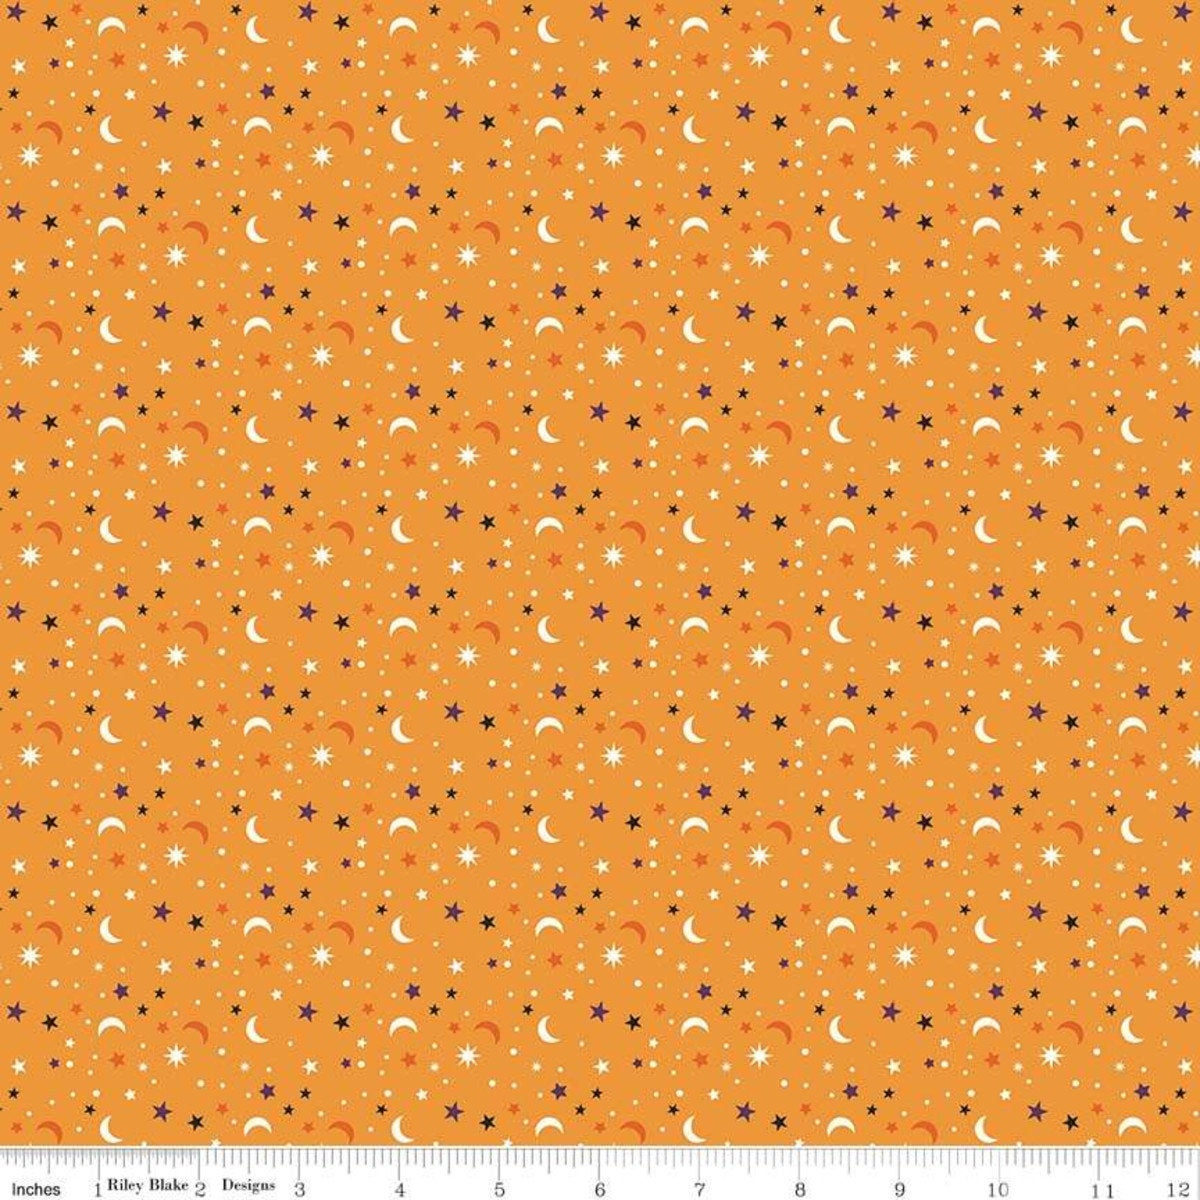 Fab-Boo-Lous for Riley Blake - Halloween Star Scatter Orange - Sold by the Yard and Cut Continuous - Ships Today